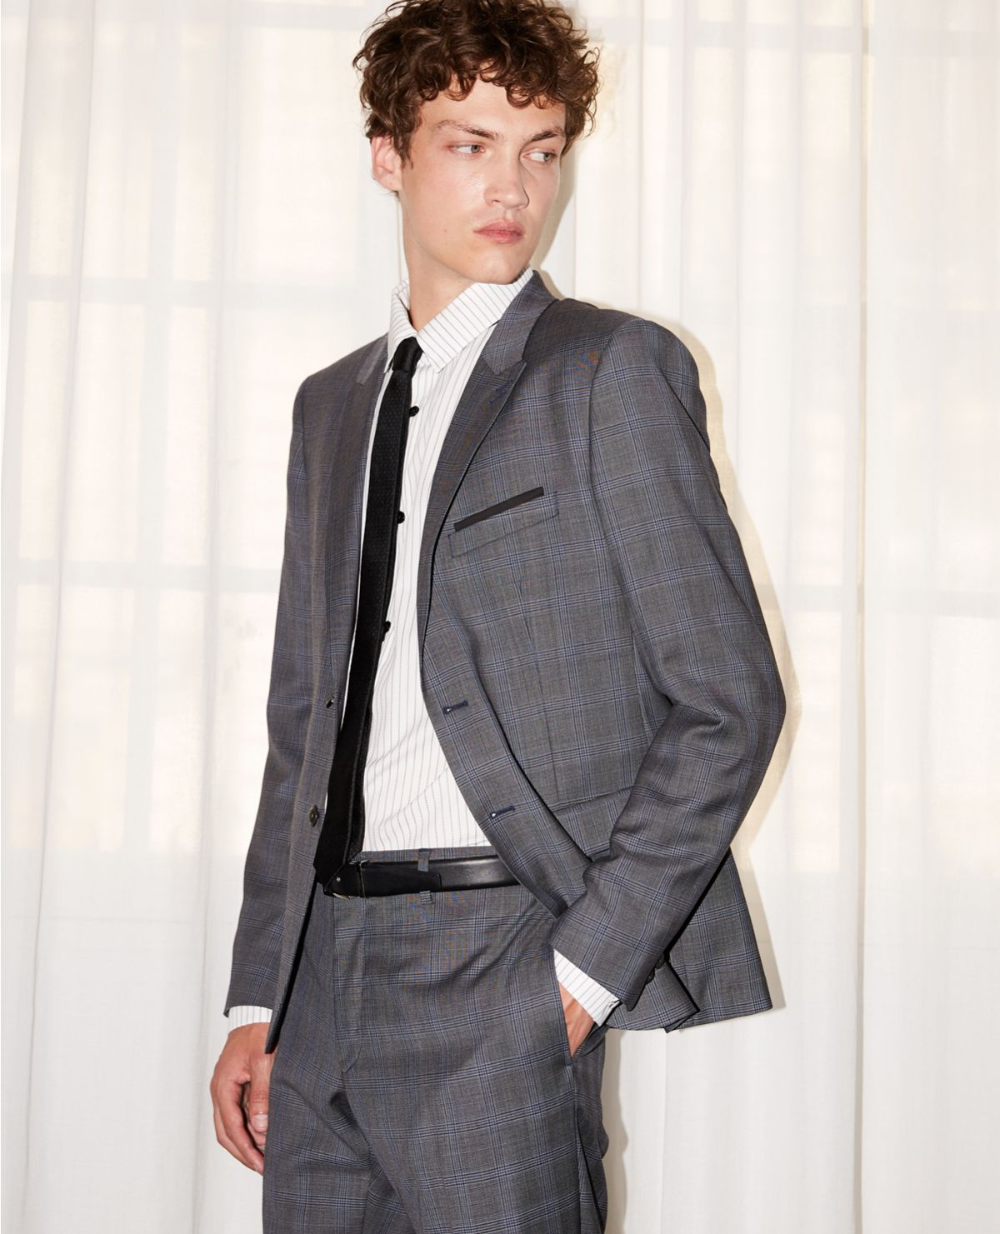 Gray Prince-of-Wales wool formal jacket #newyearseveoutfits